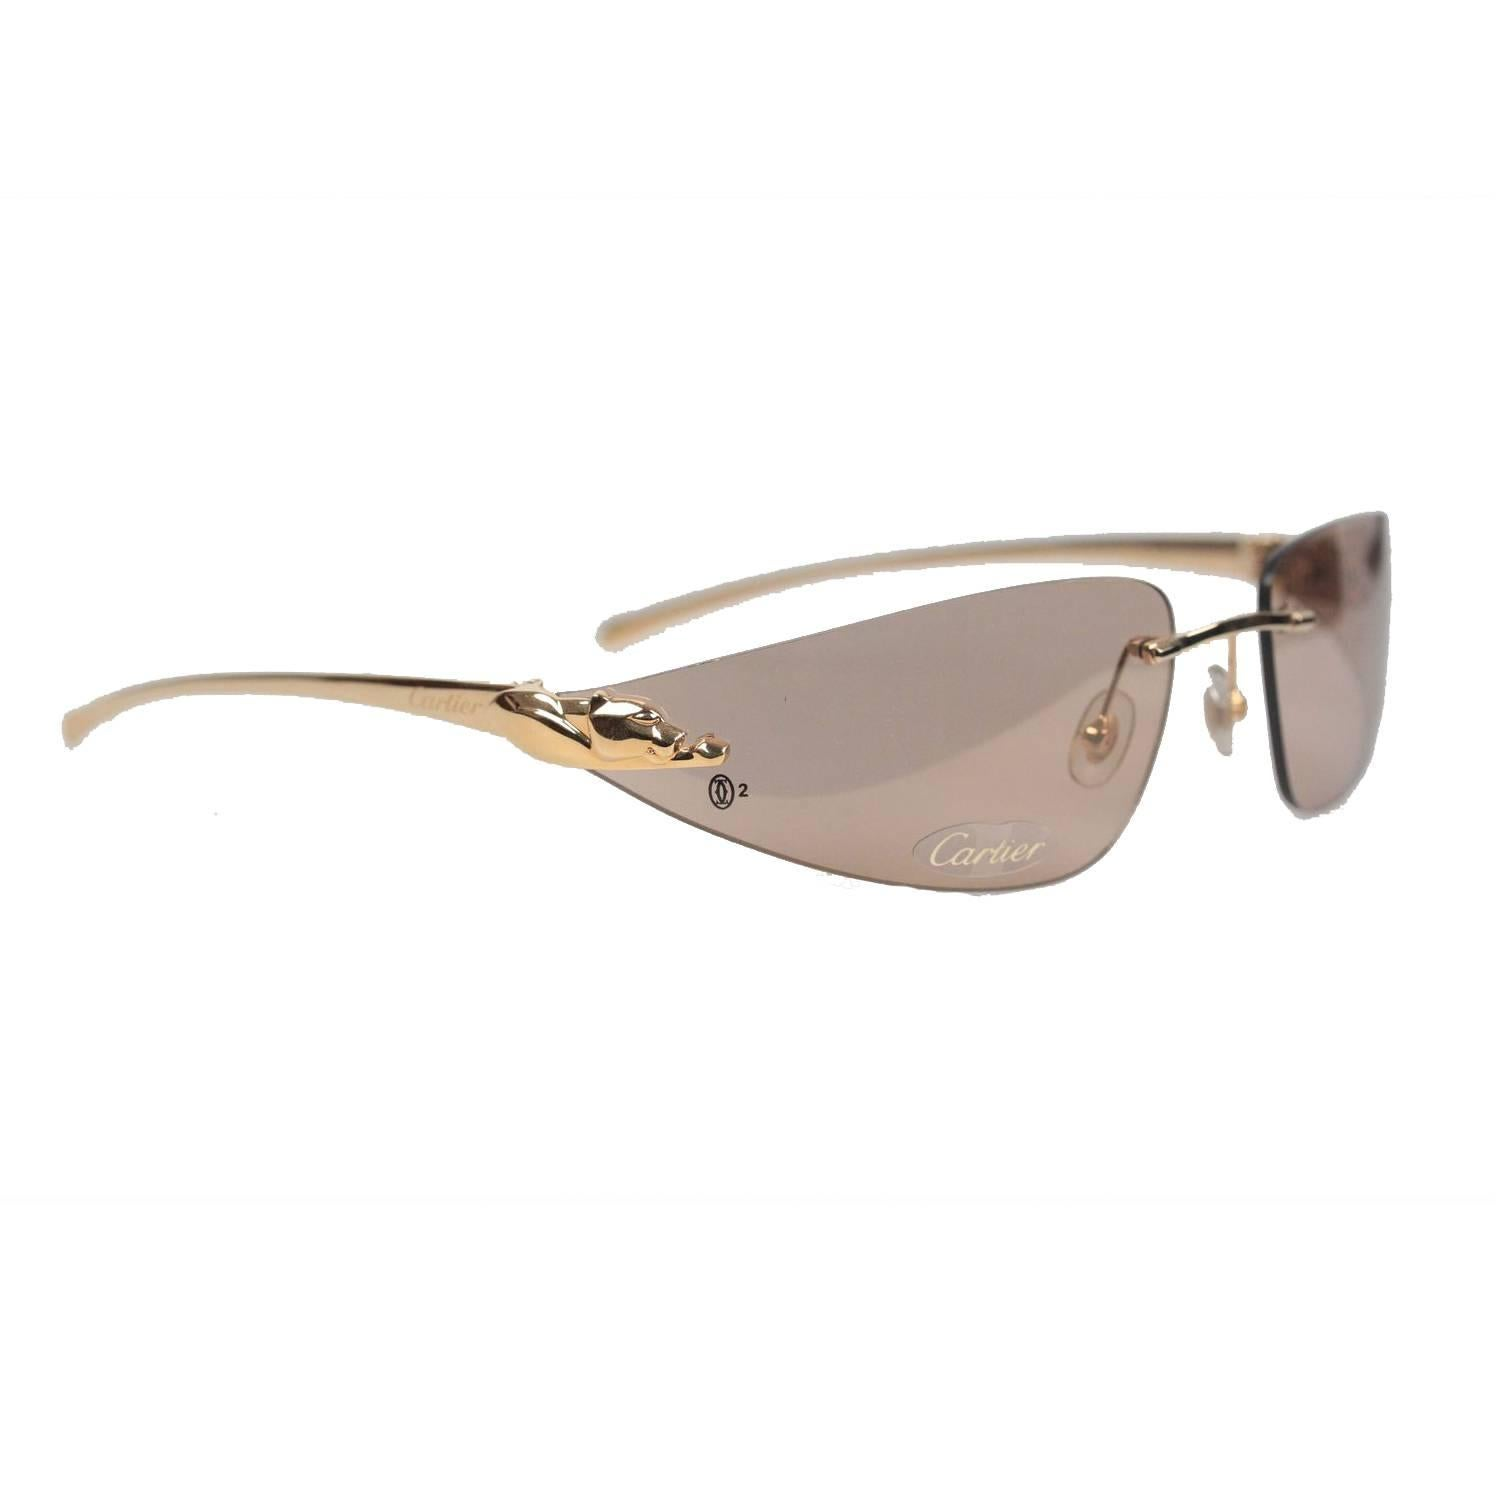 b7045bc7453a Cartier Rimless Glasses « One More Soul